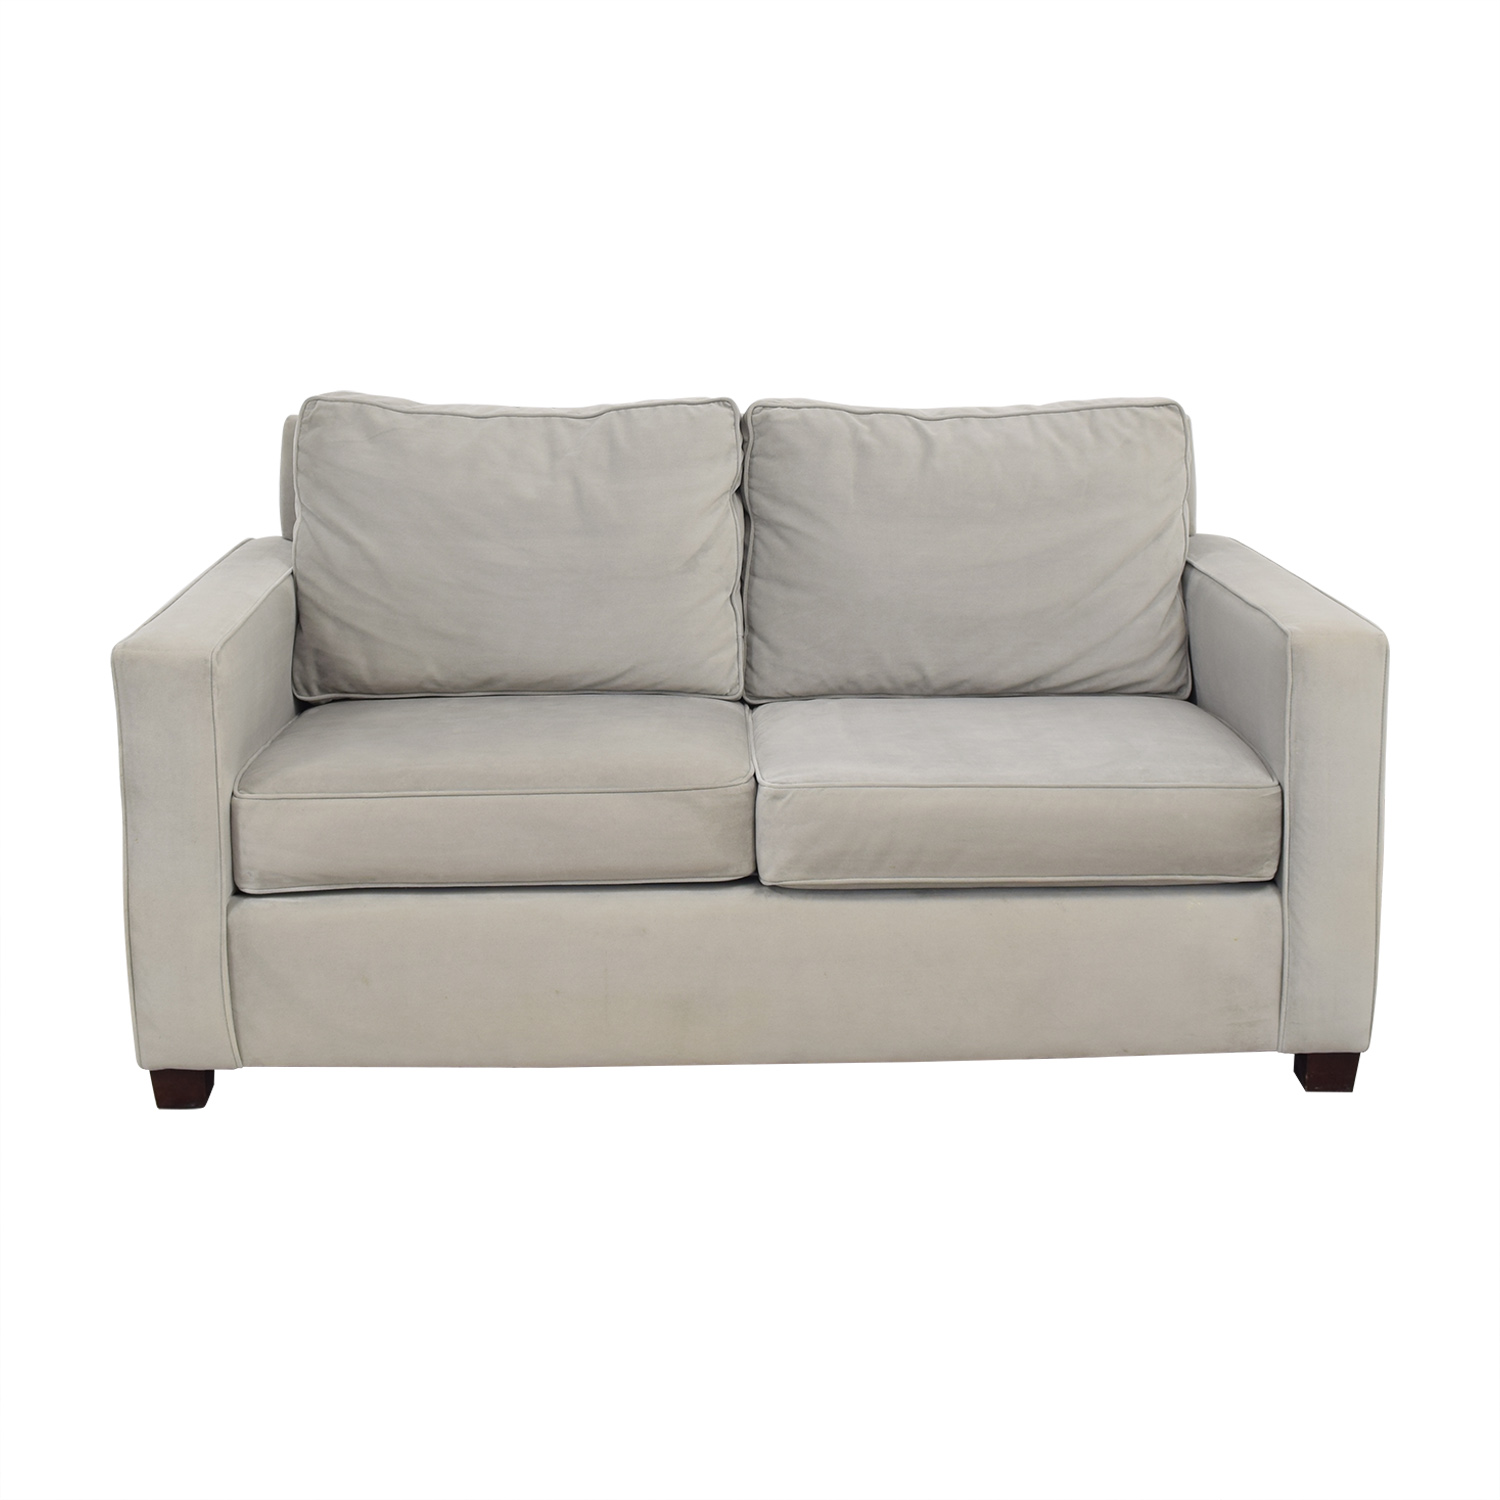 West Elm West Elm Henry Loveseat ct